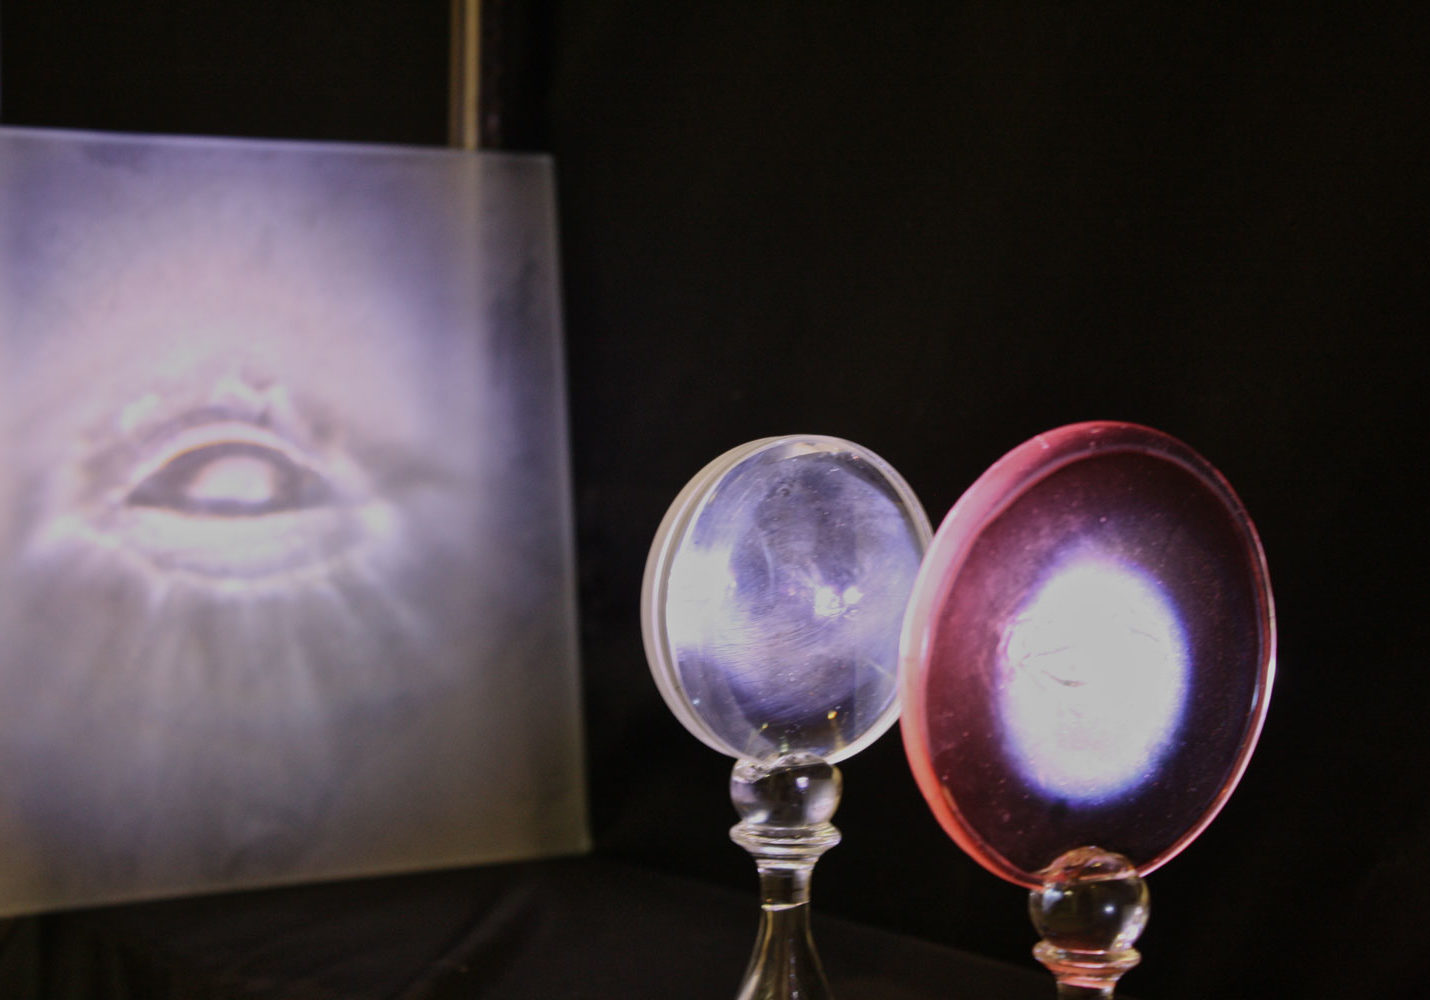 An image of a magic lantern show performed at Providence Public Library